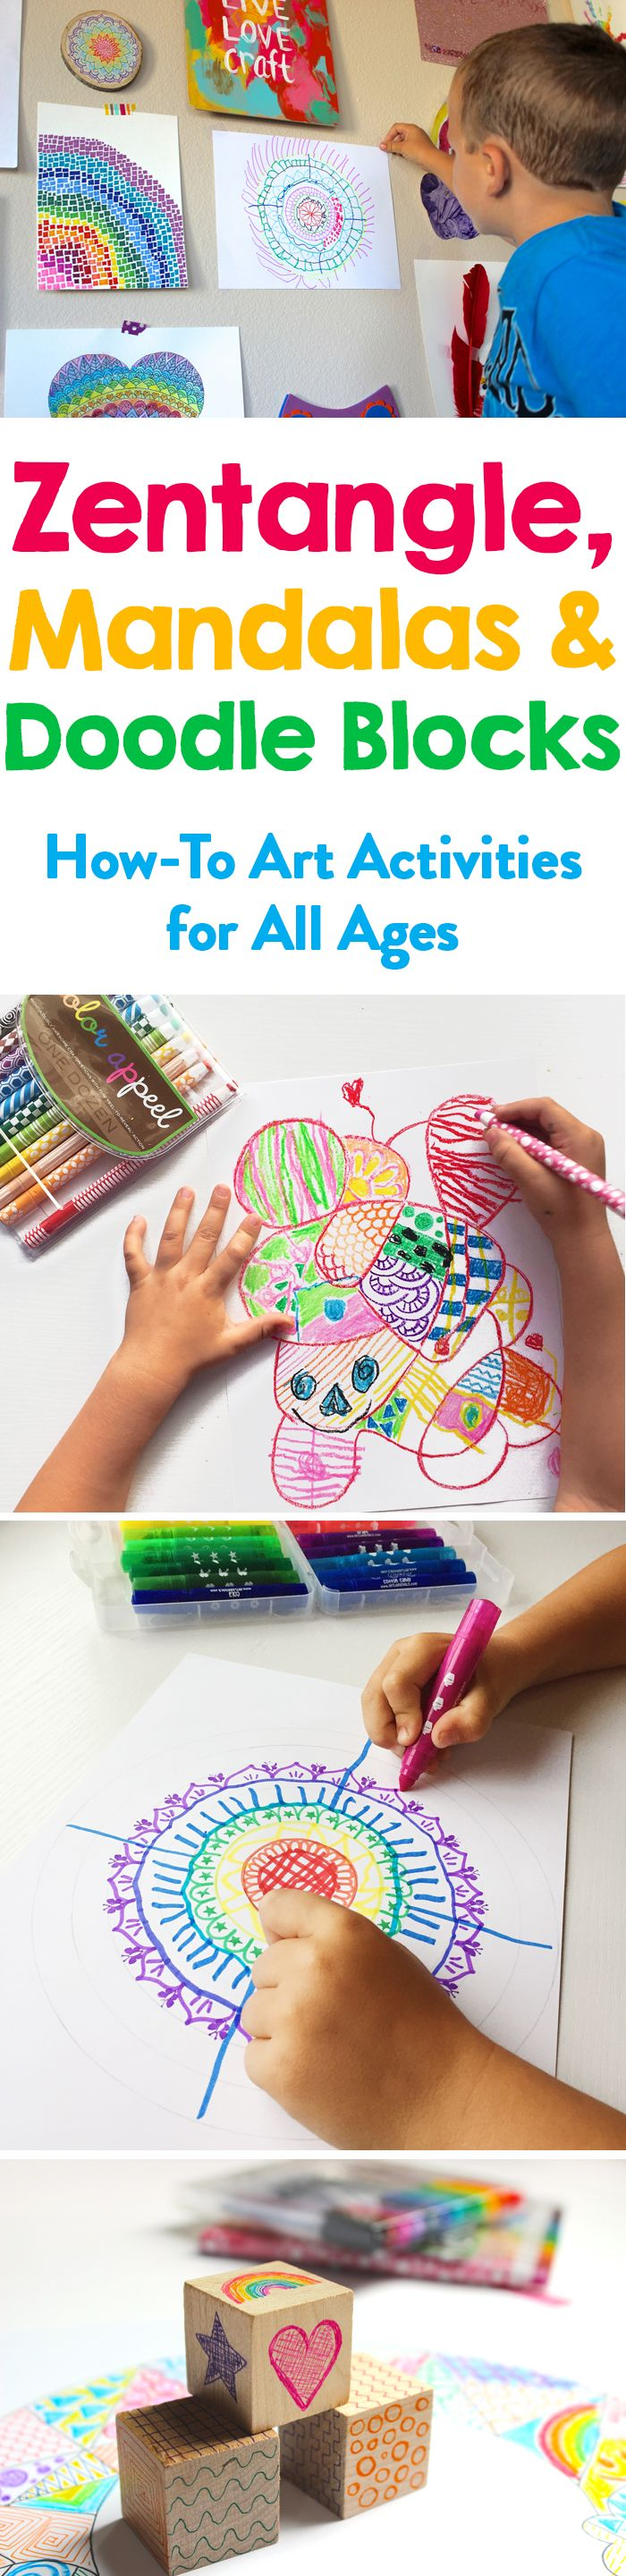 25 best ideas about art games for kids on pinterest for Creative art projects for adults